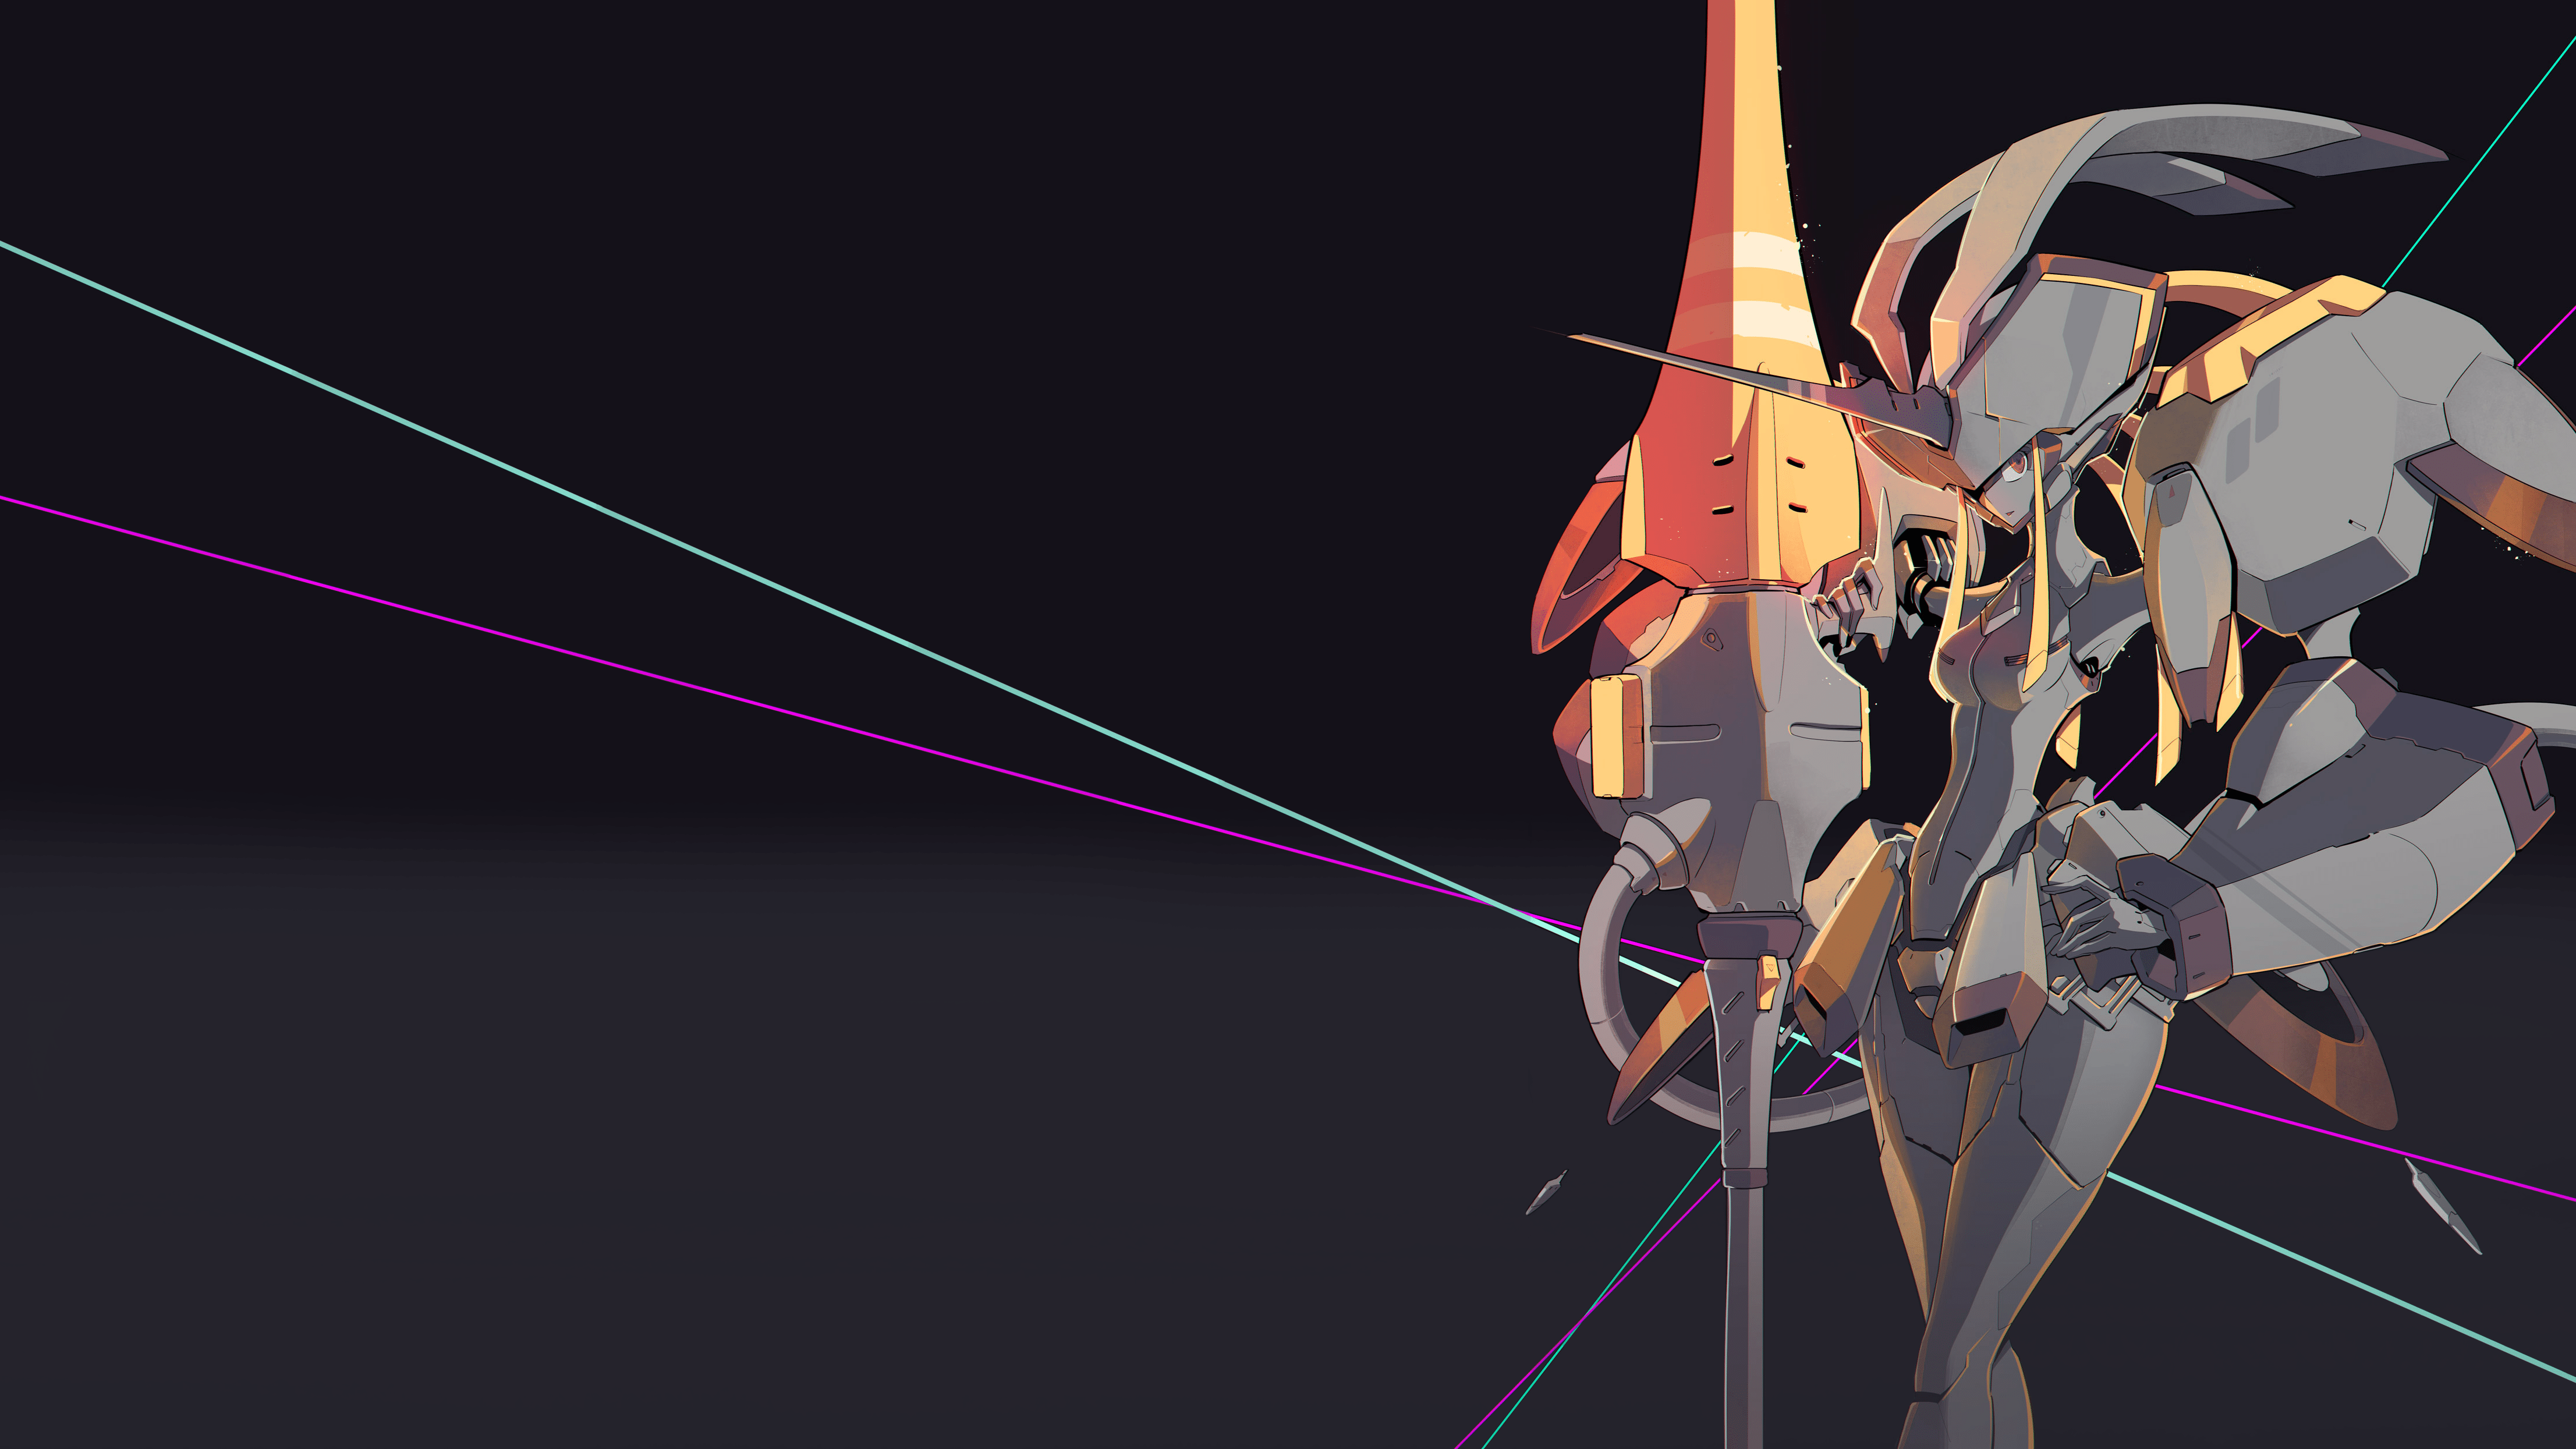 Free Download Darling In The Franxx Key Visual Edit Hd Wallpaper From 4425x2489 For Your Desktop Mobile Darling In The Franxx Anime Wallpaper Live Darling